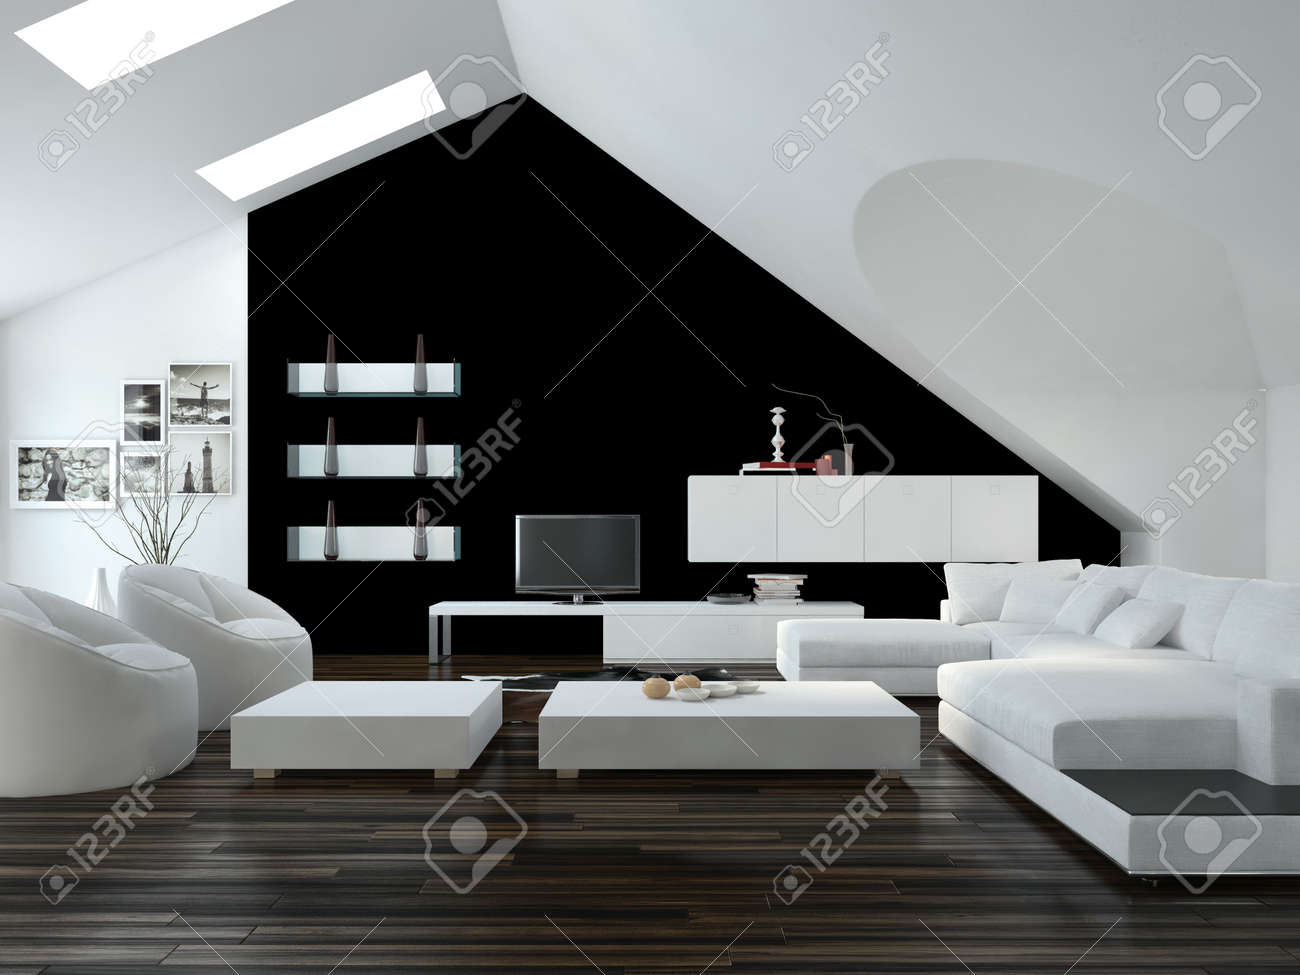 Modern design loft living room interior with skylights in the